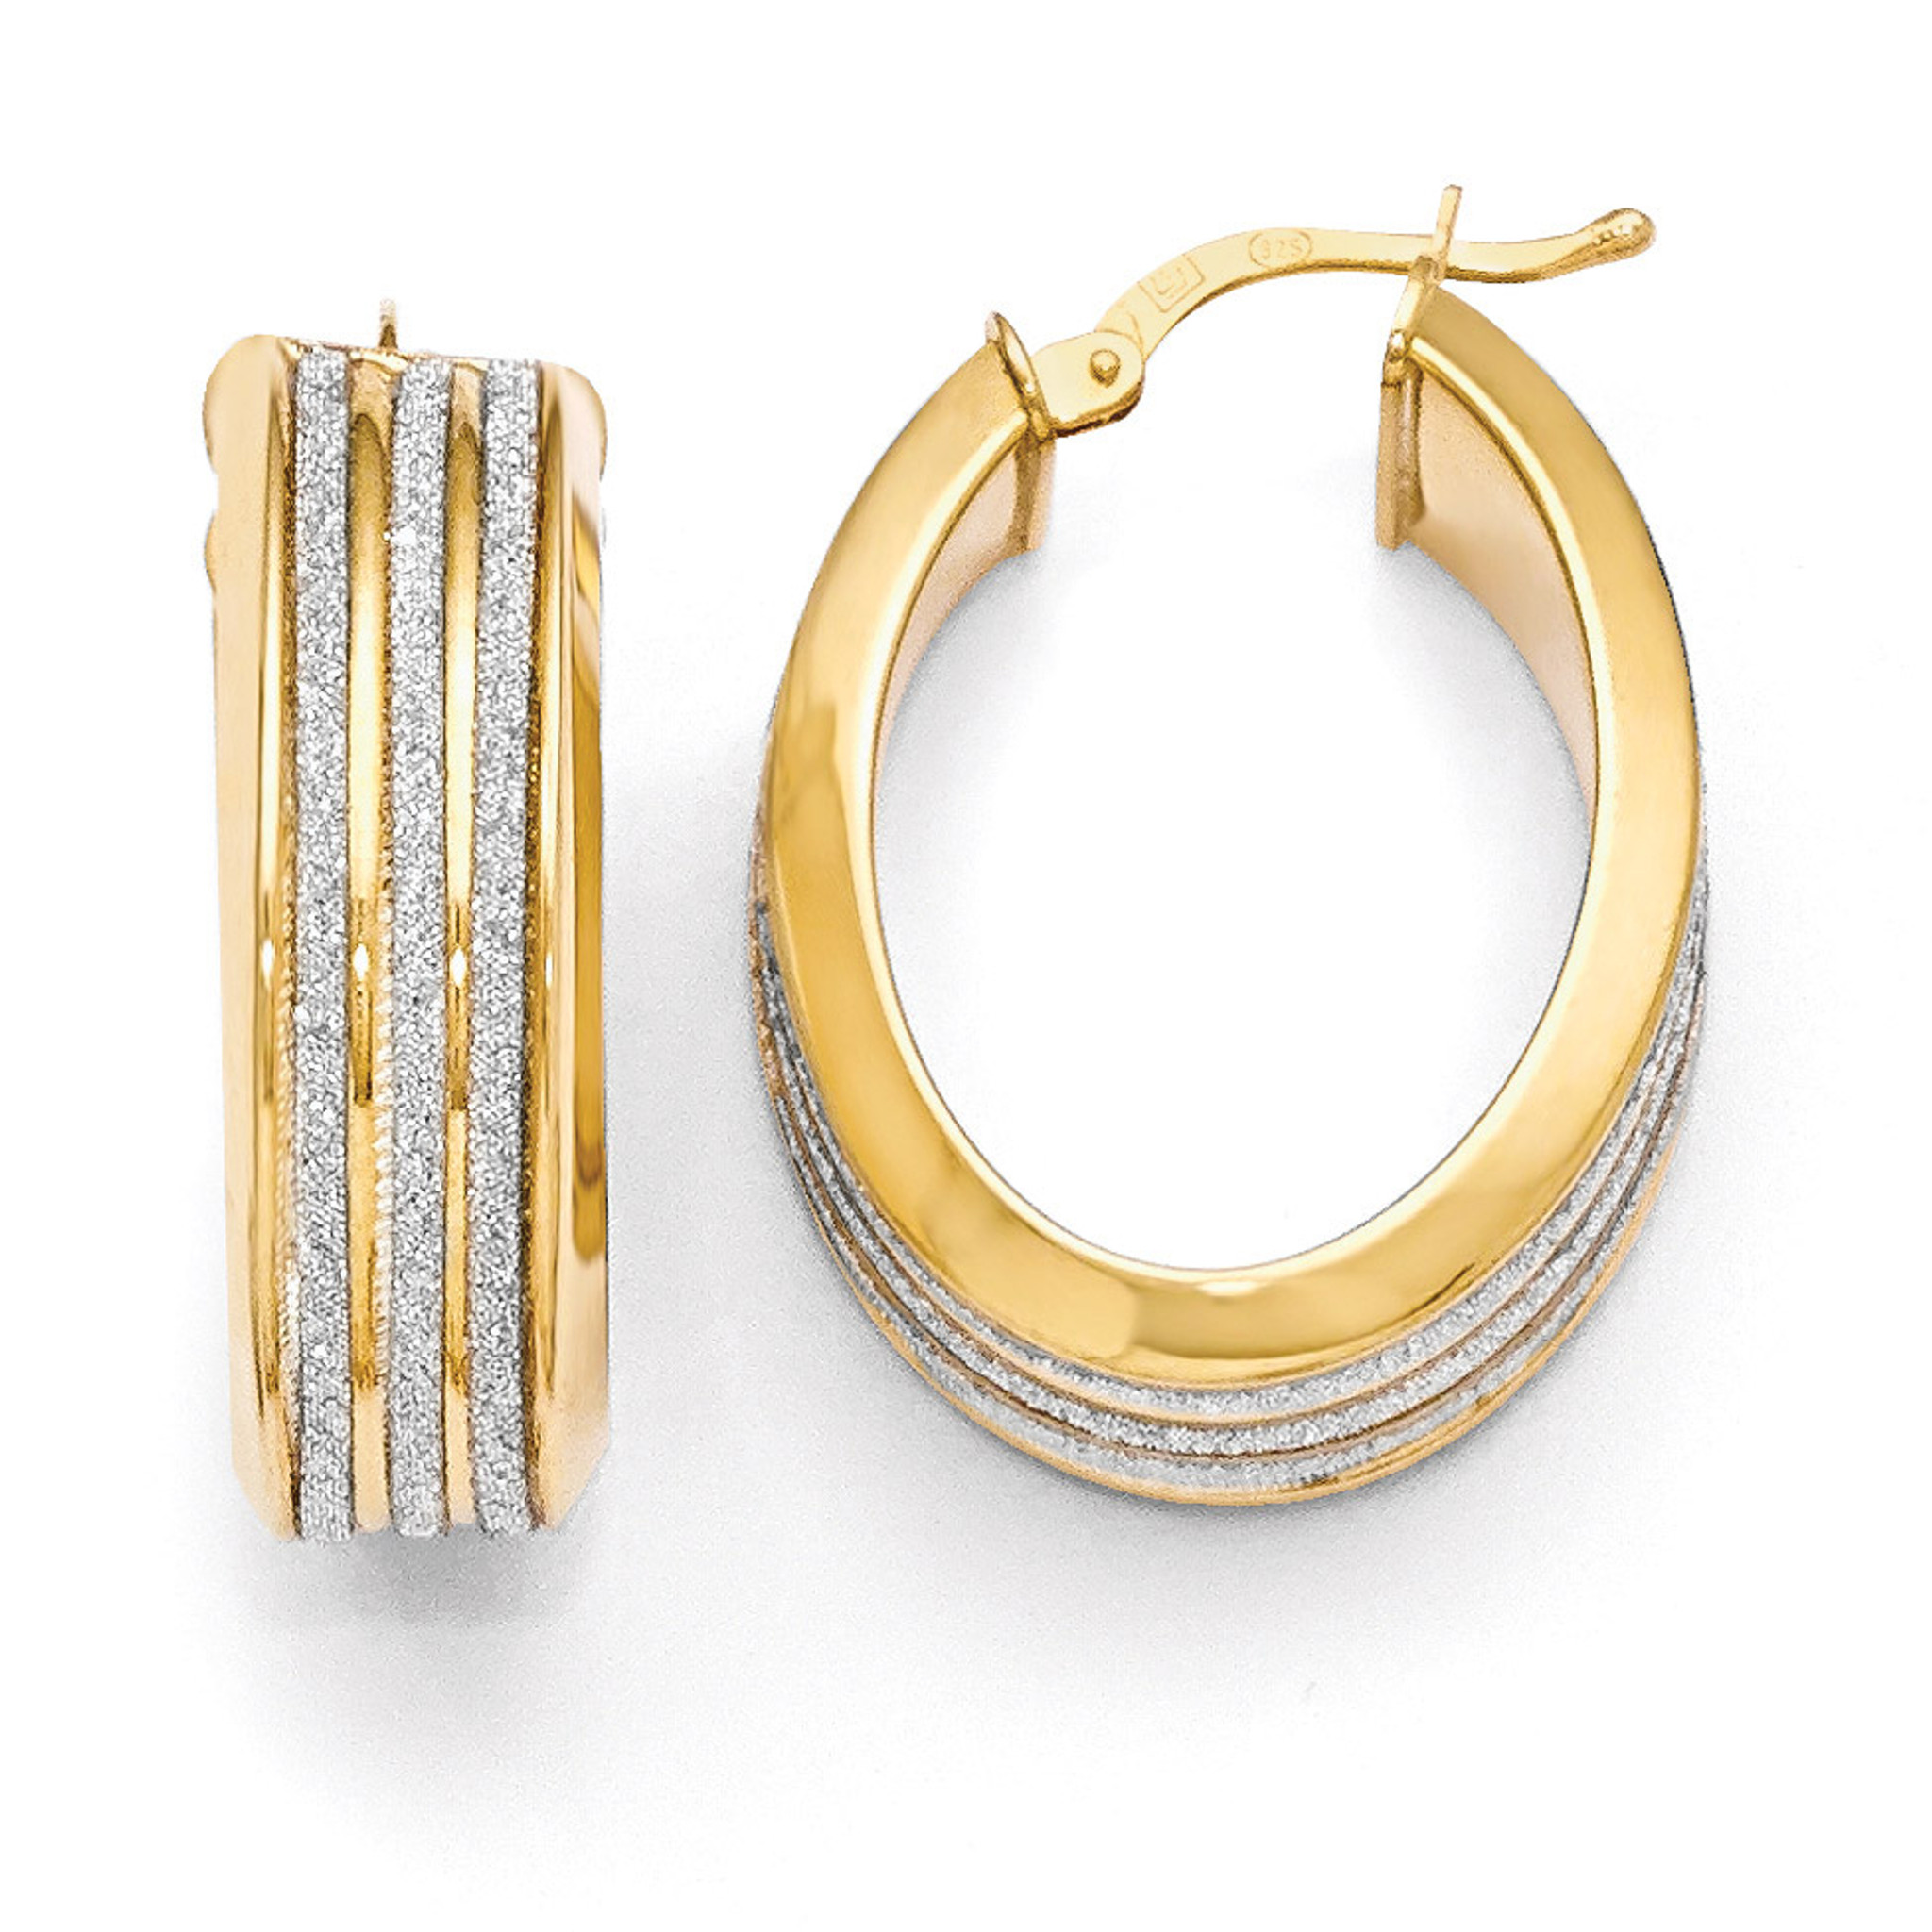 8dc63ab42a9cd Gold-plated Glimmer Infused Hoop Earrings Sterling Silver .